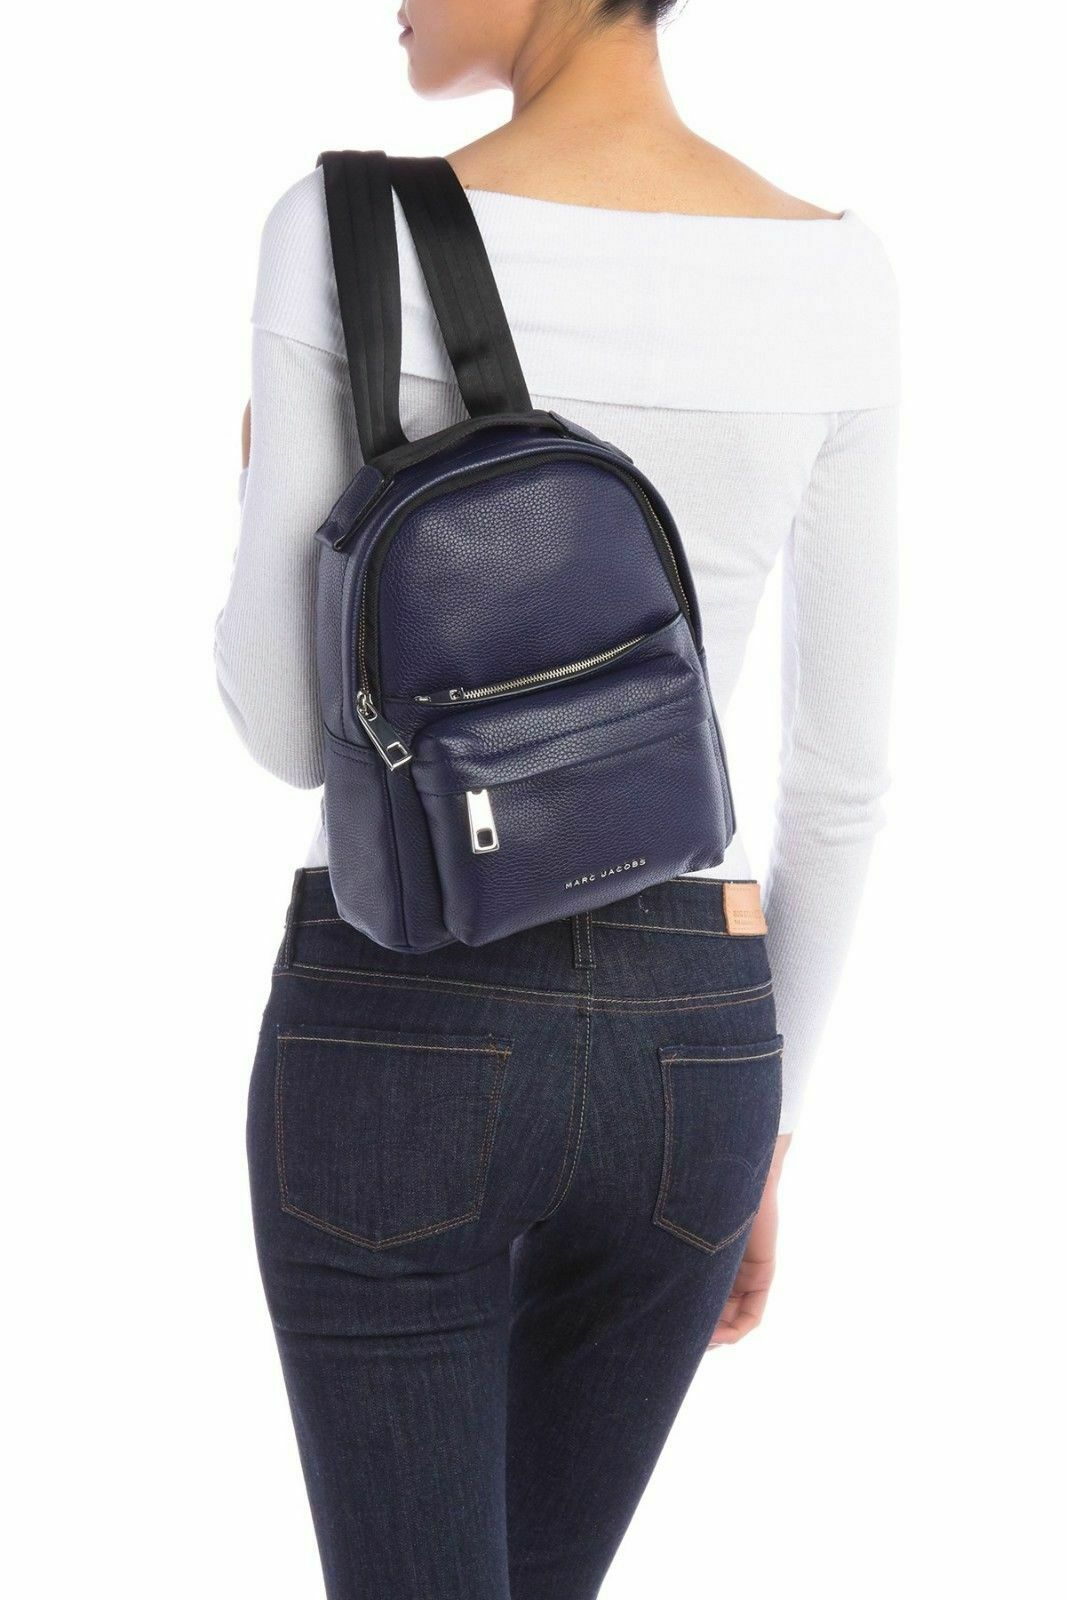 Primary image for Marc Jacobs Varsity Pack Small Leather Backpack Women's Bag INDIGO MSRP $395.00